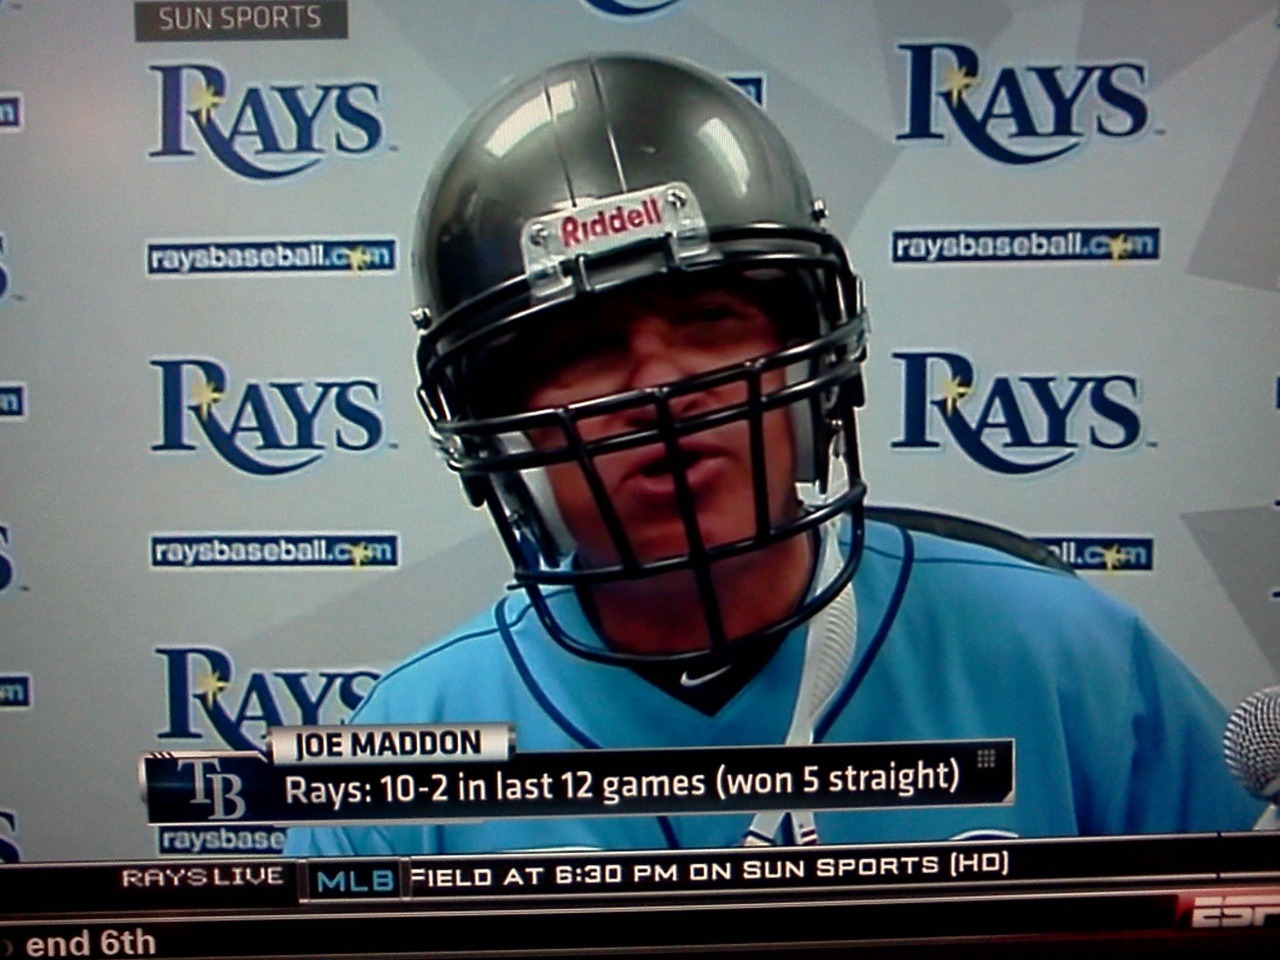 inothernews:  Tampa Bay Rays manager Joe Maddon, wearing a Bucs helmet during the post-game presser in solidarity with his town's NFL team.  I love Maddon so much. He is so wonderfully St. Pete.